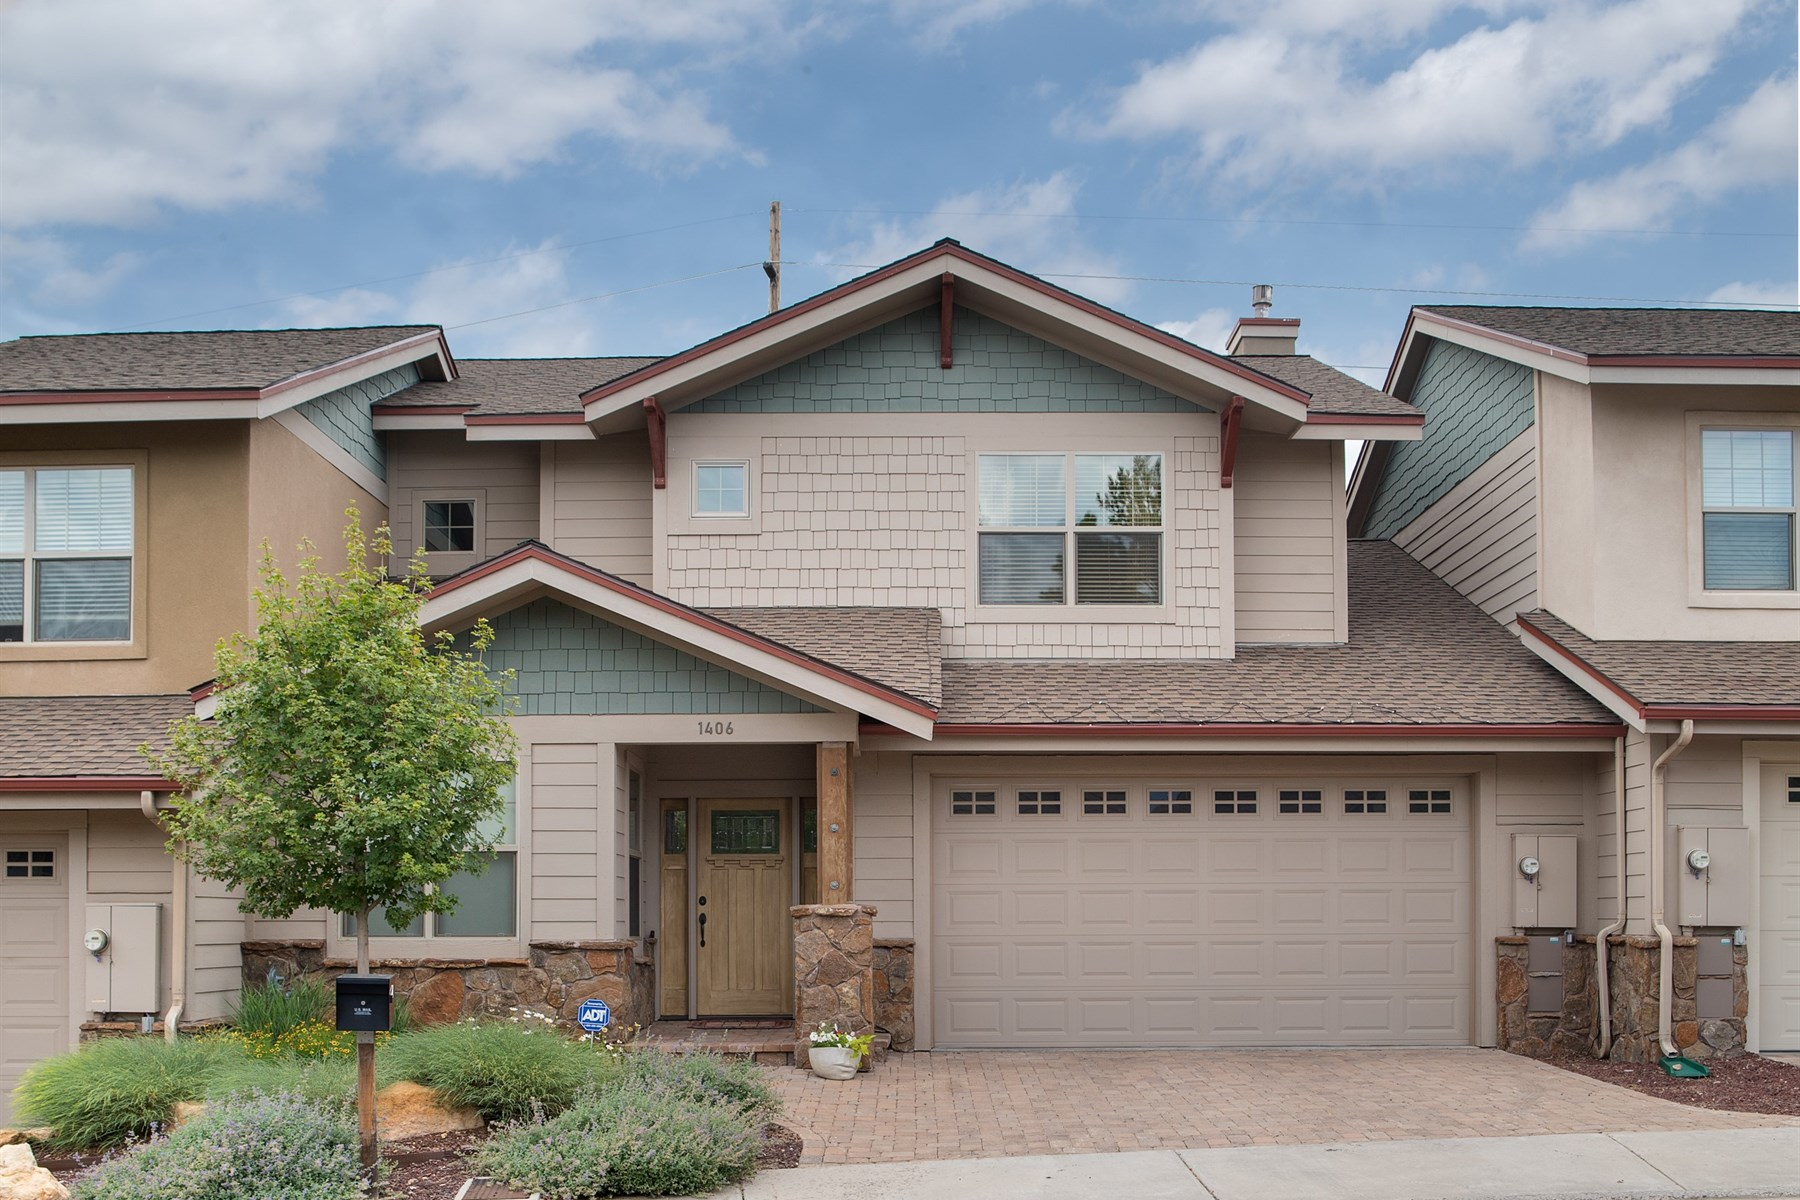 Single Family Home for Sale at Stunning Pine Knoll Village Townhouse. 1406 E Sundrop LN Flagstaff, Arizona 86001 United States